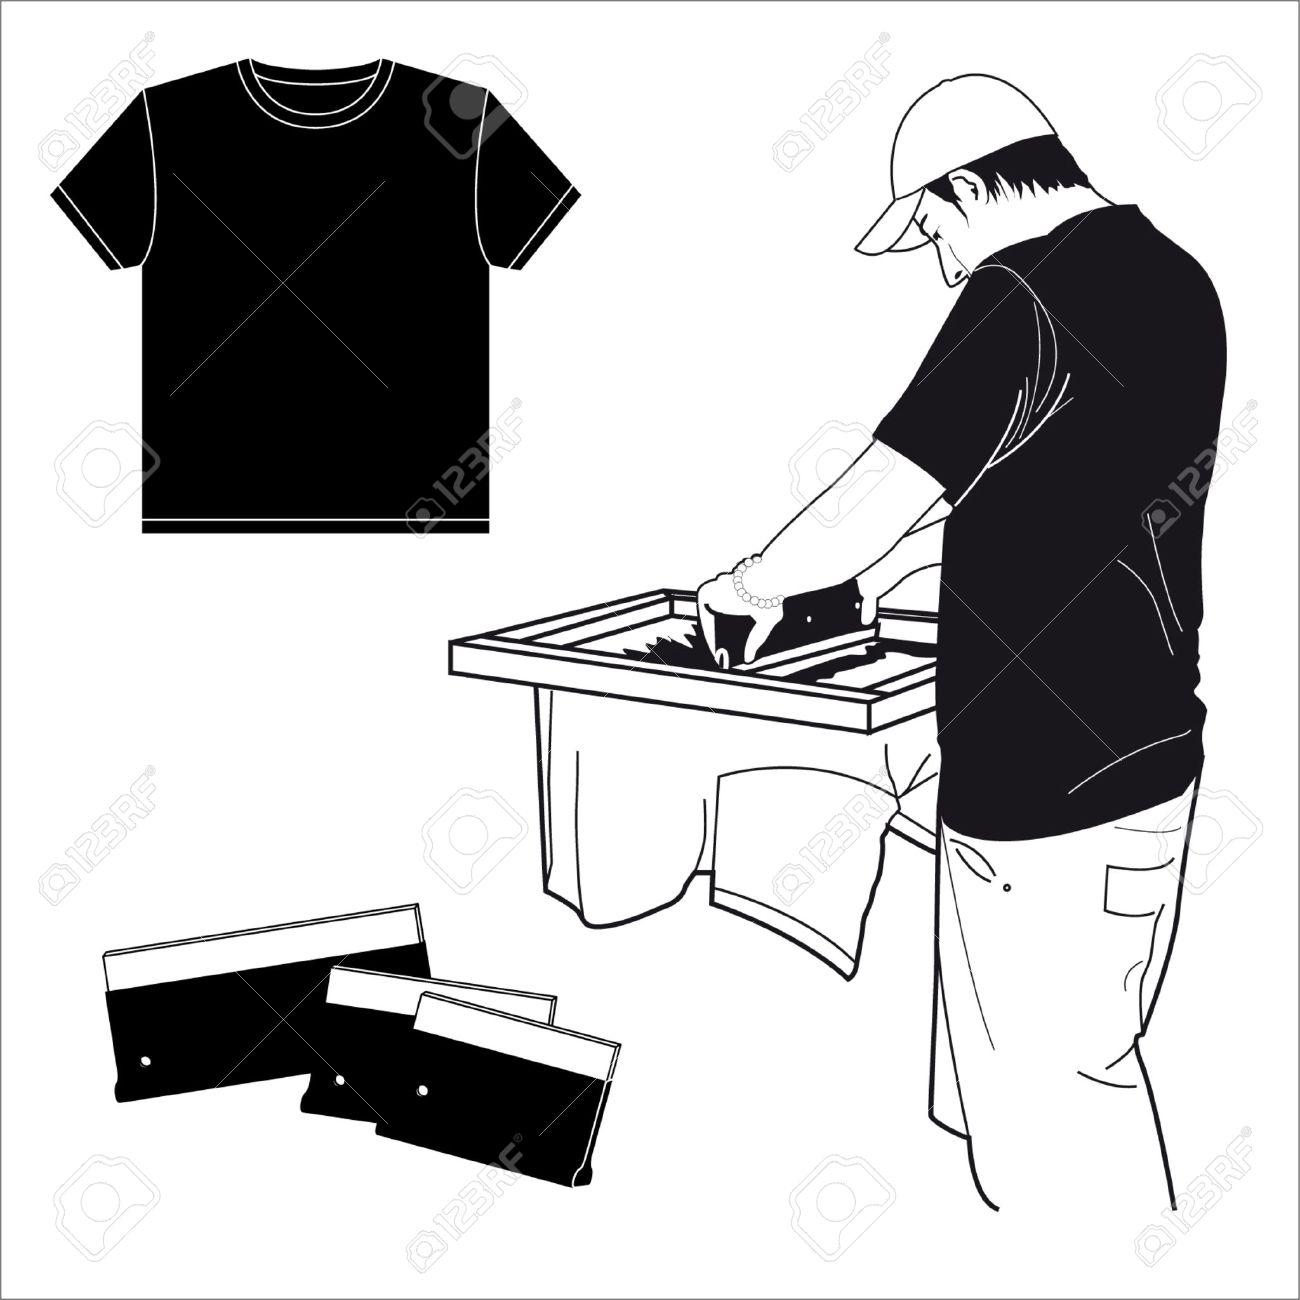 Screen printing clipart 1 » Clipart Station.